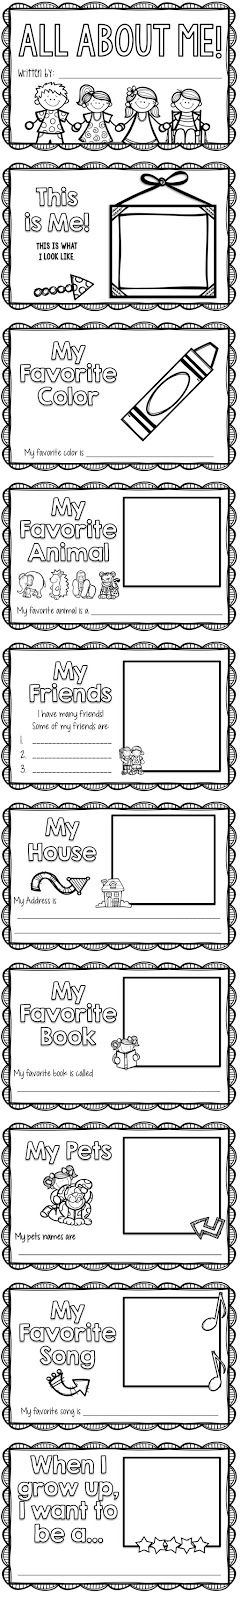 Another TpT pack posted! This one is inspired by one of my best sellers: my All About Me book ! I made it last year as a All About Me unit f...